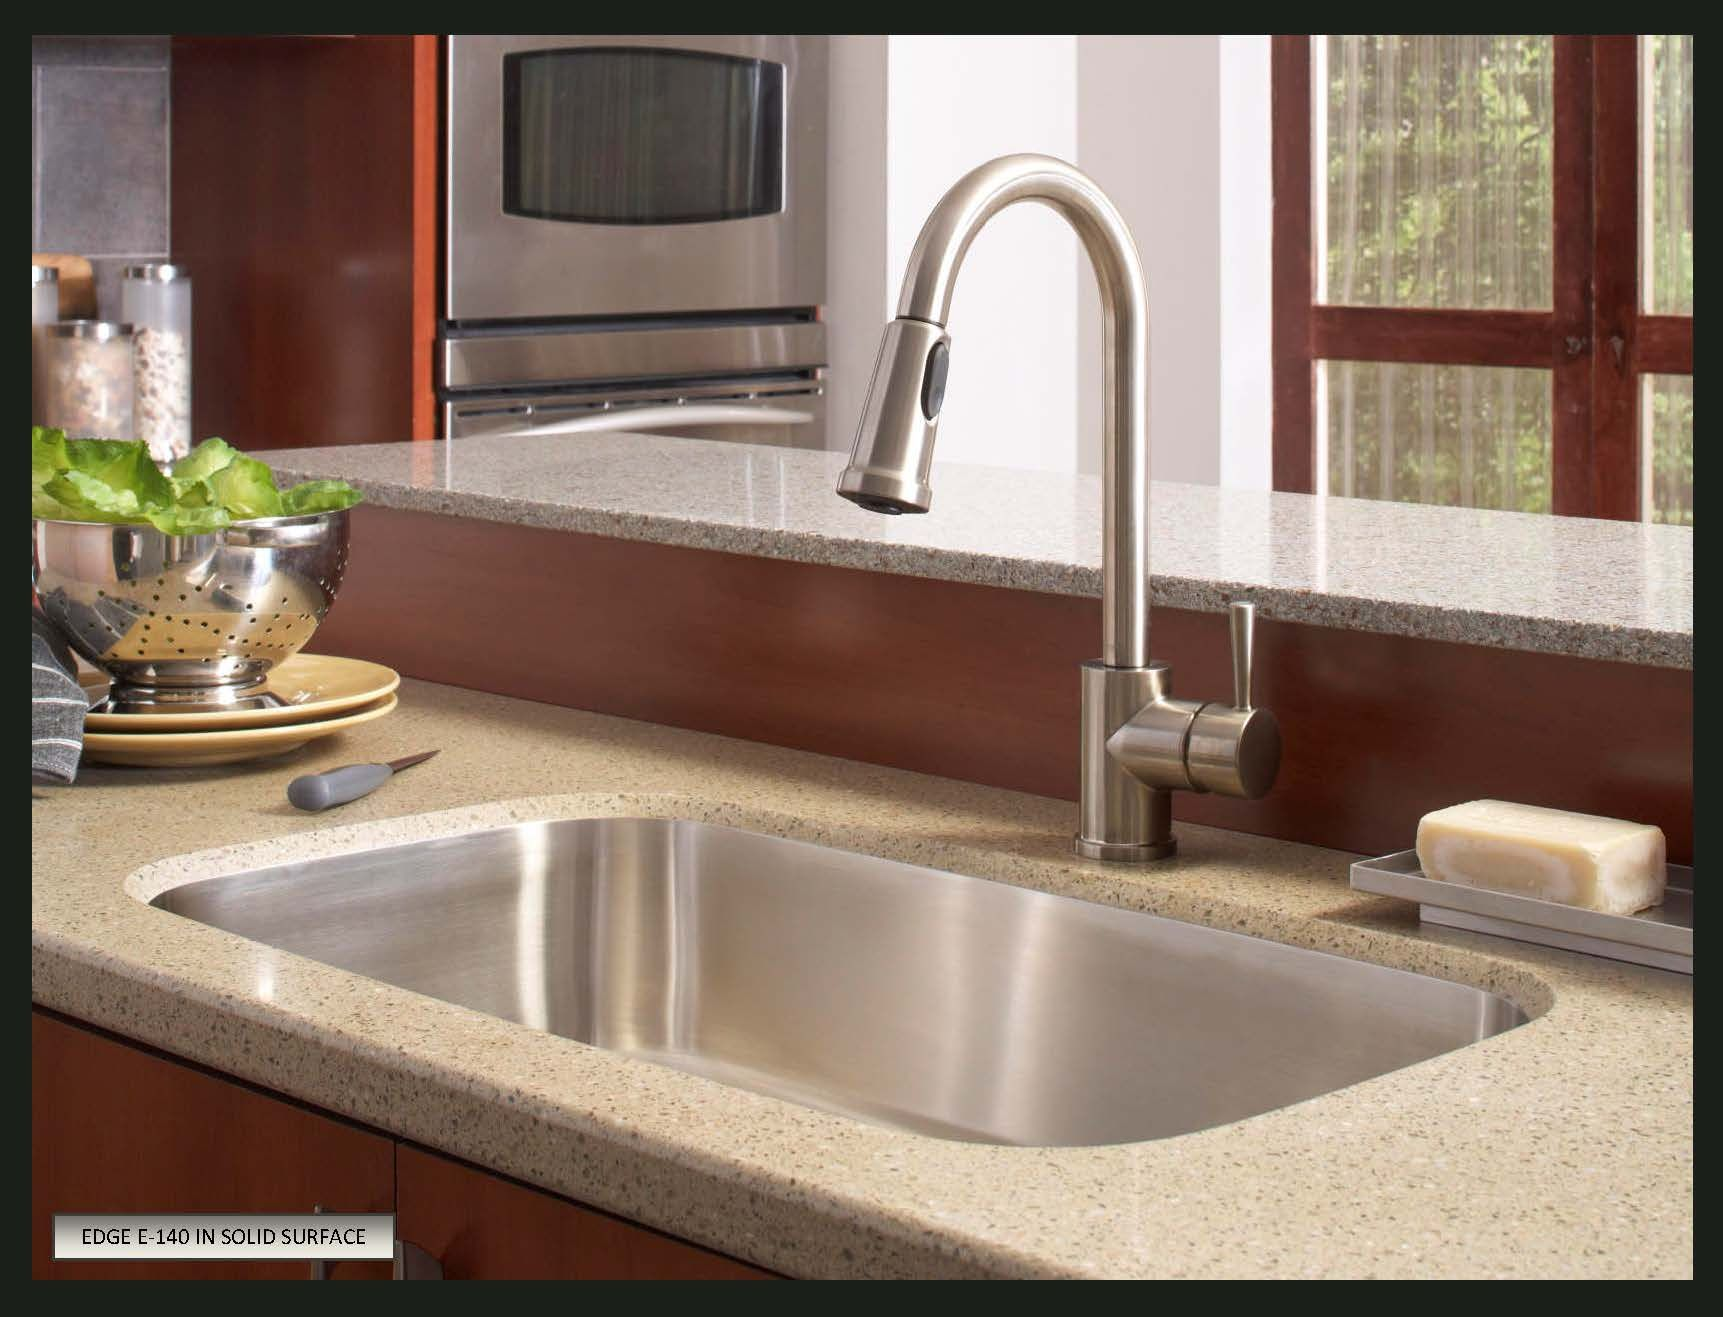 Stainless sink in a corian countertop google search for Stainless steel countertop with integral sink